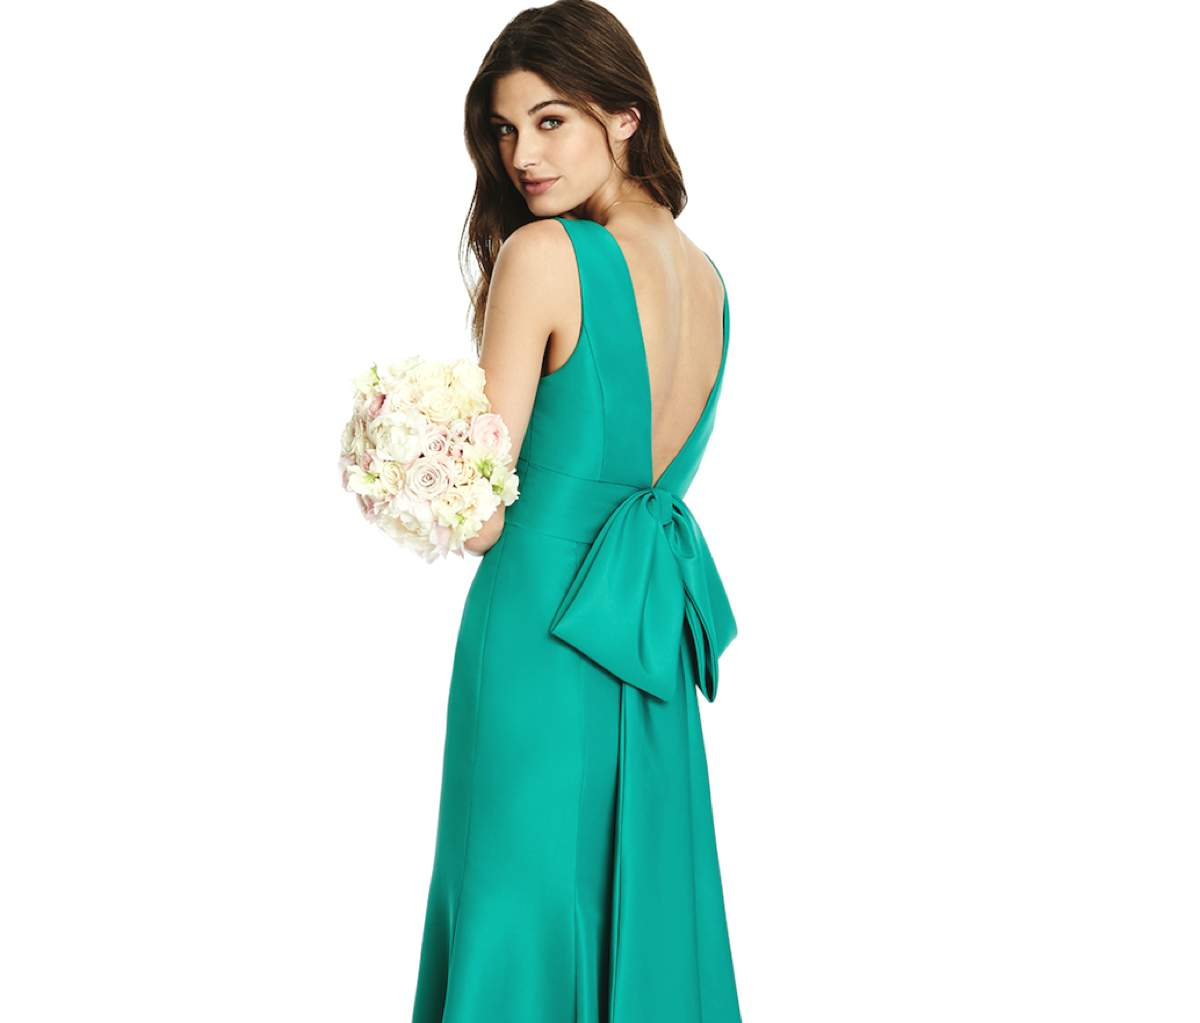 Colour pop for your maids\' dresses! - Love Our Wedding